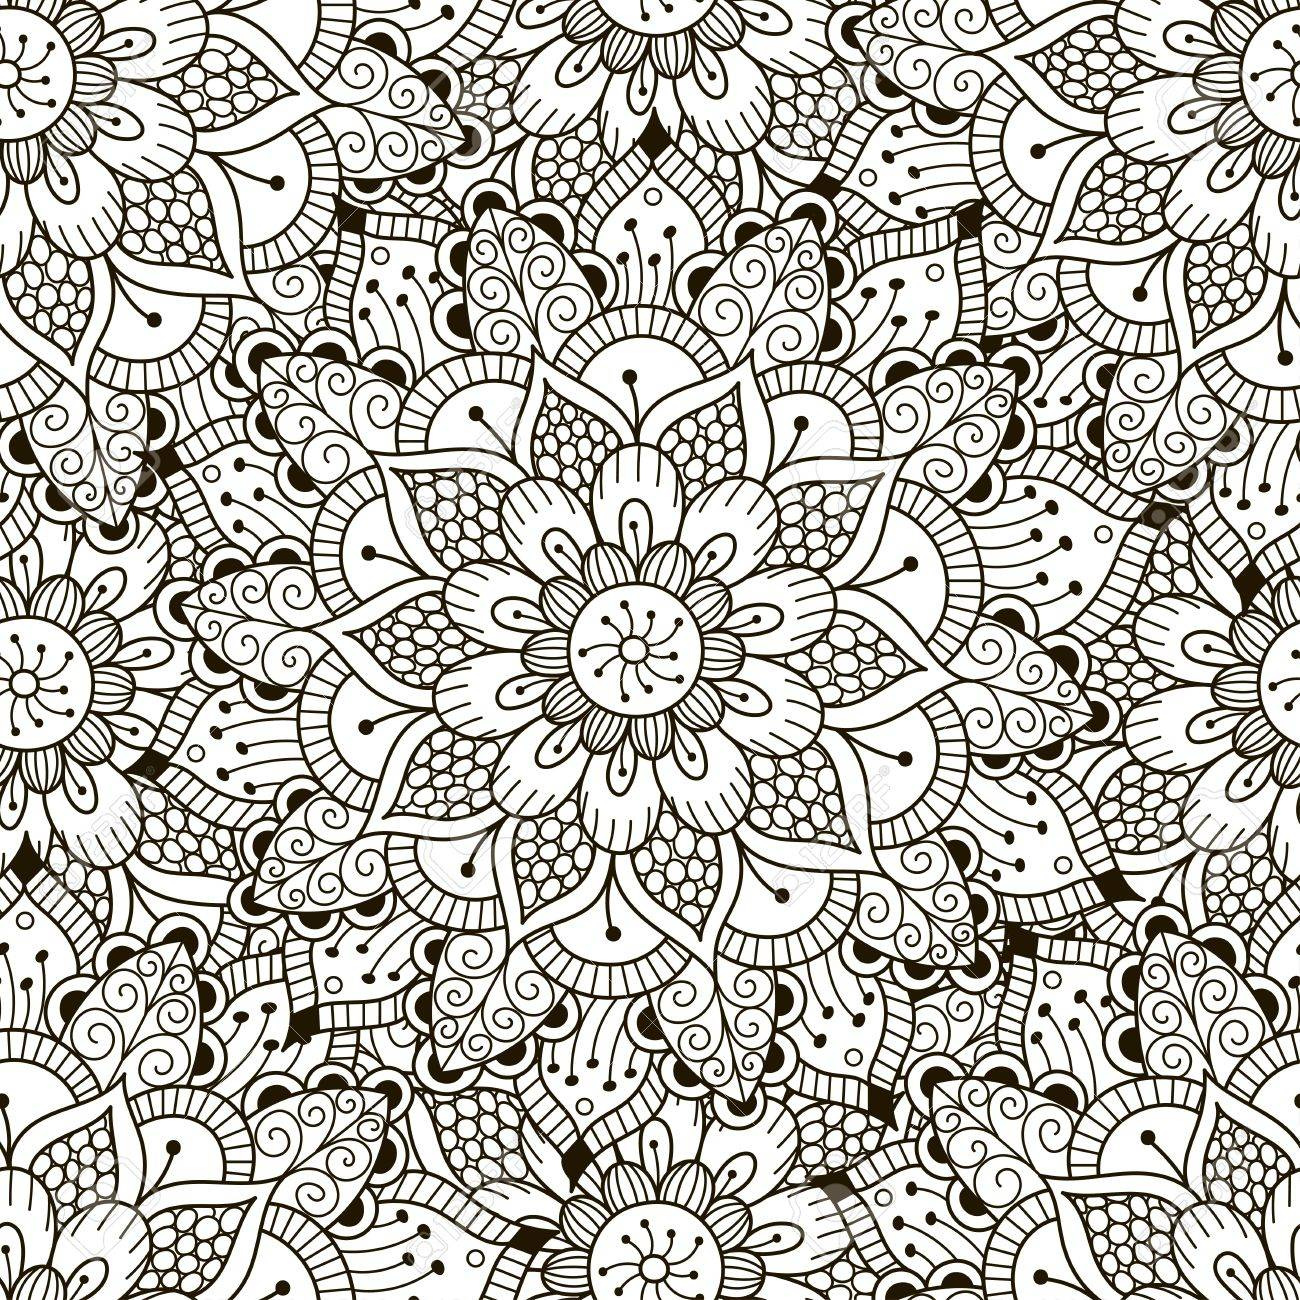 Floral Ornament Seamless Pattern. Coloring Pages For Adults